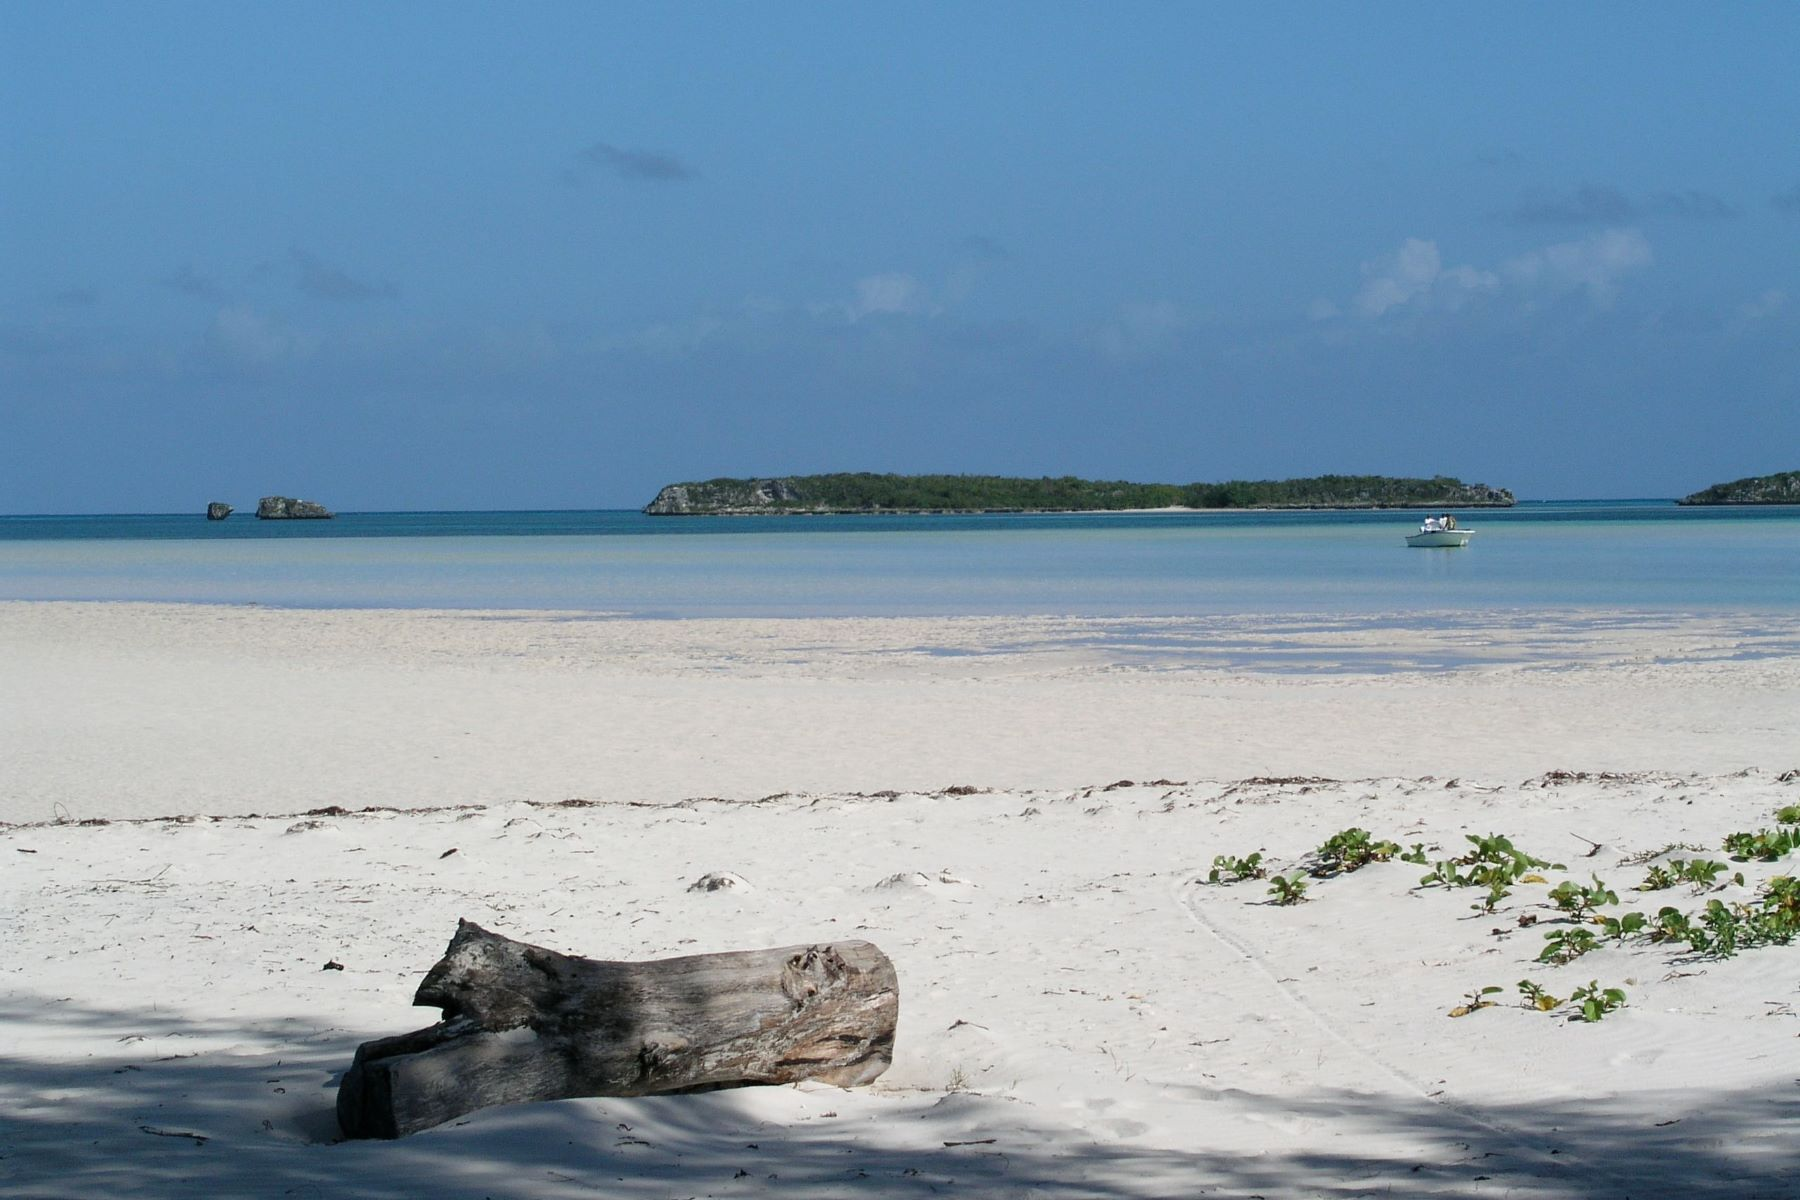 Land for Sale at Lot 4 with beach access Russell Island, Spanish Wells, Eleuthera Bahamas